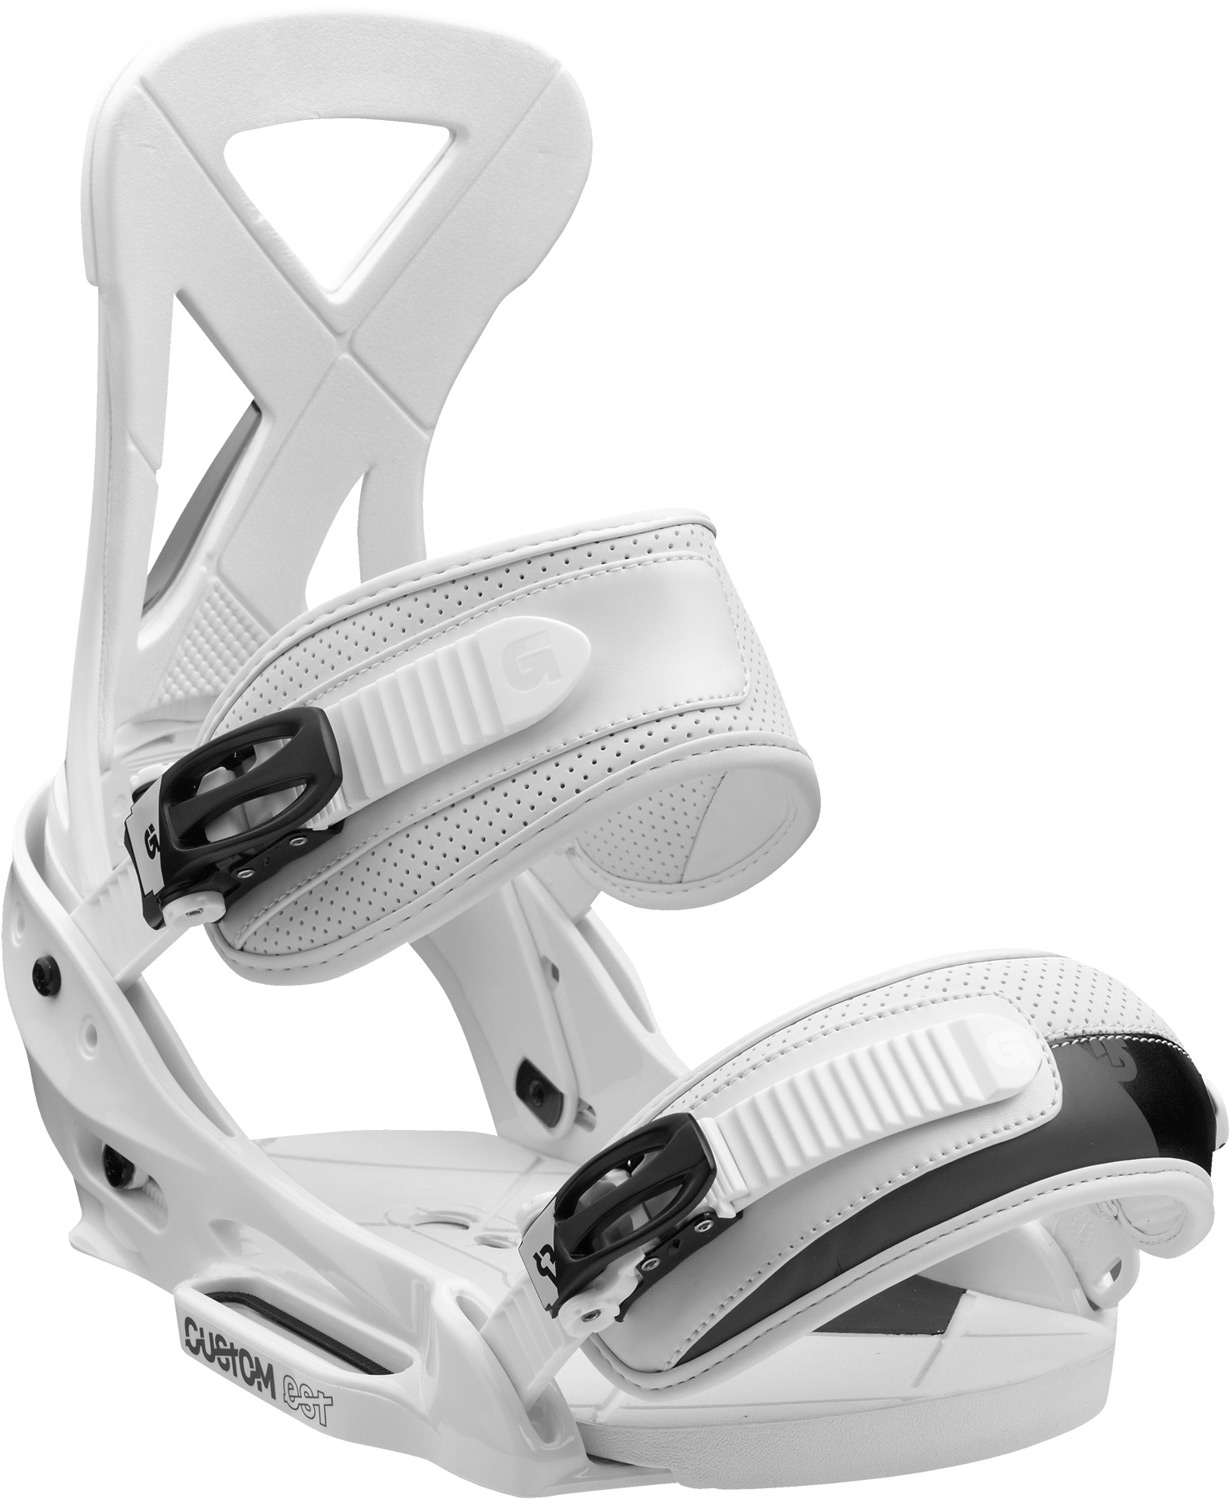 Snowboard Redefine your ride with breakthrough flex and feel.Key Features of the Burton Custom EST Snowboard Bindings: Response: 4 Baseplate: Single-Component Lightweight, Bomb-Proof Polycarbonate EST Hi-Back: Single-Component Canted Living Hinge Hi-Back with DialFLAD Straps: Lushstrap and Primo Capstrap Buckles: Smooth Glide Buckles Cushioning: Removable ShredBED 2.0 Cushioning System Rides Exclusively with Burton Boards Featuring The Channel - $132.95